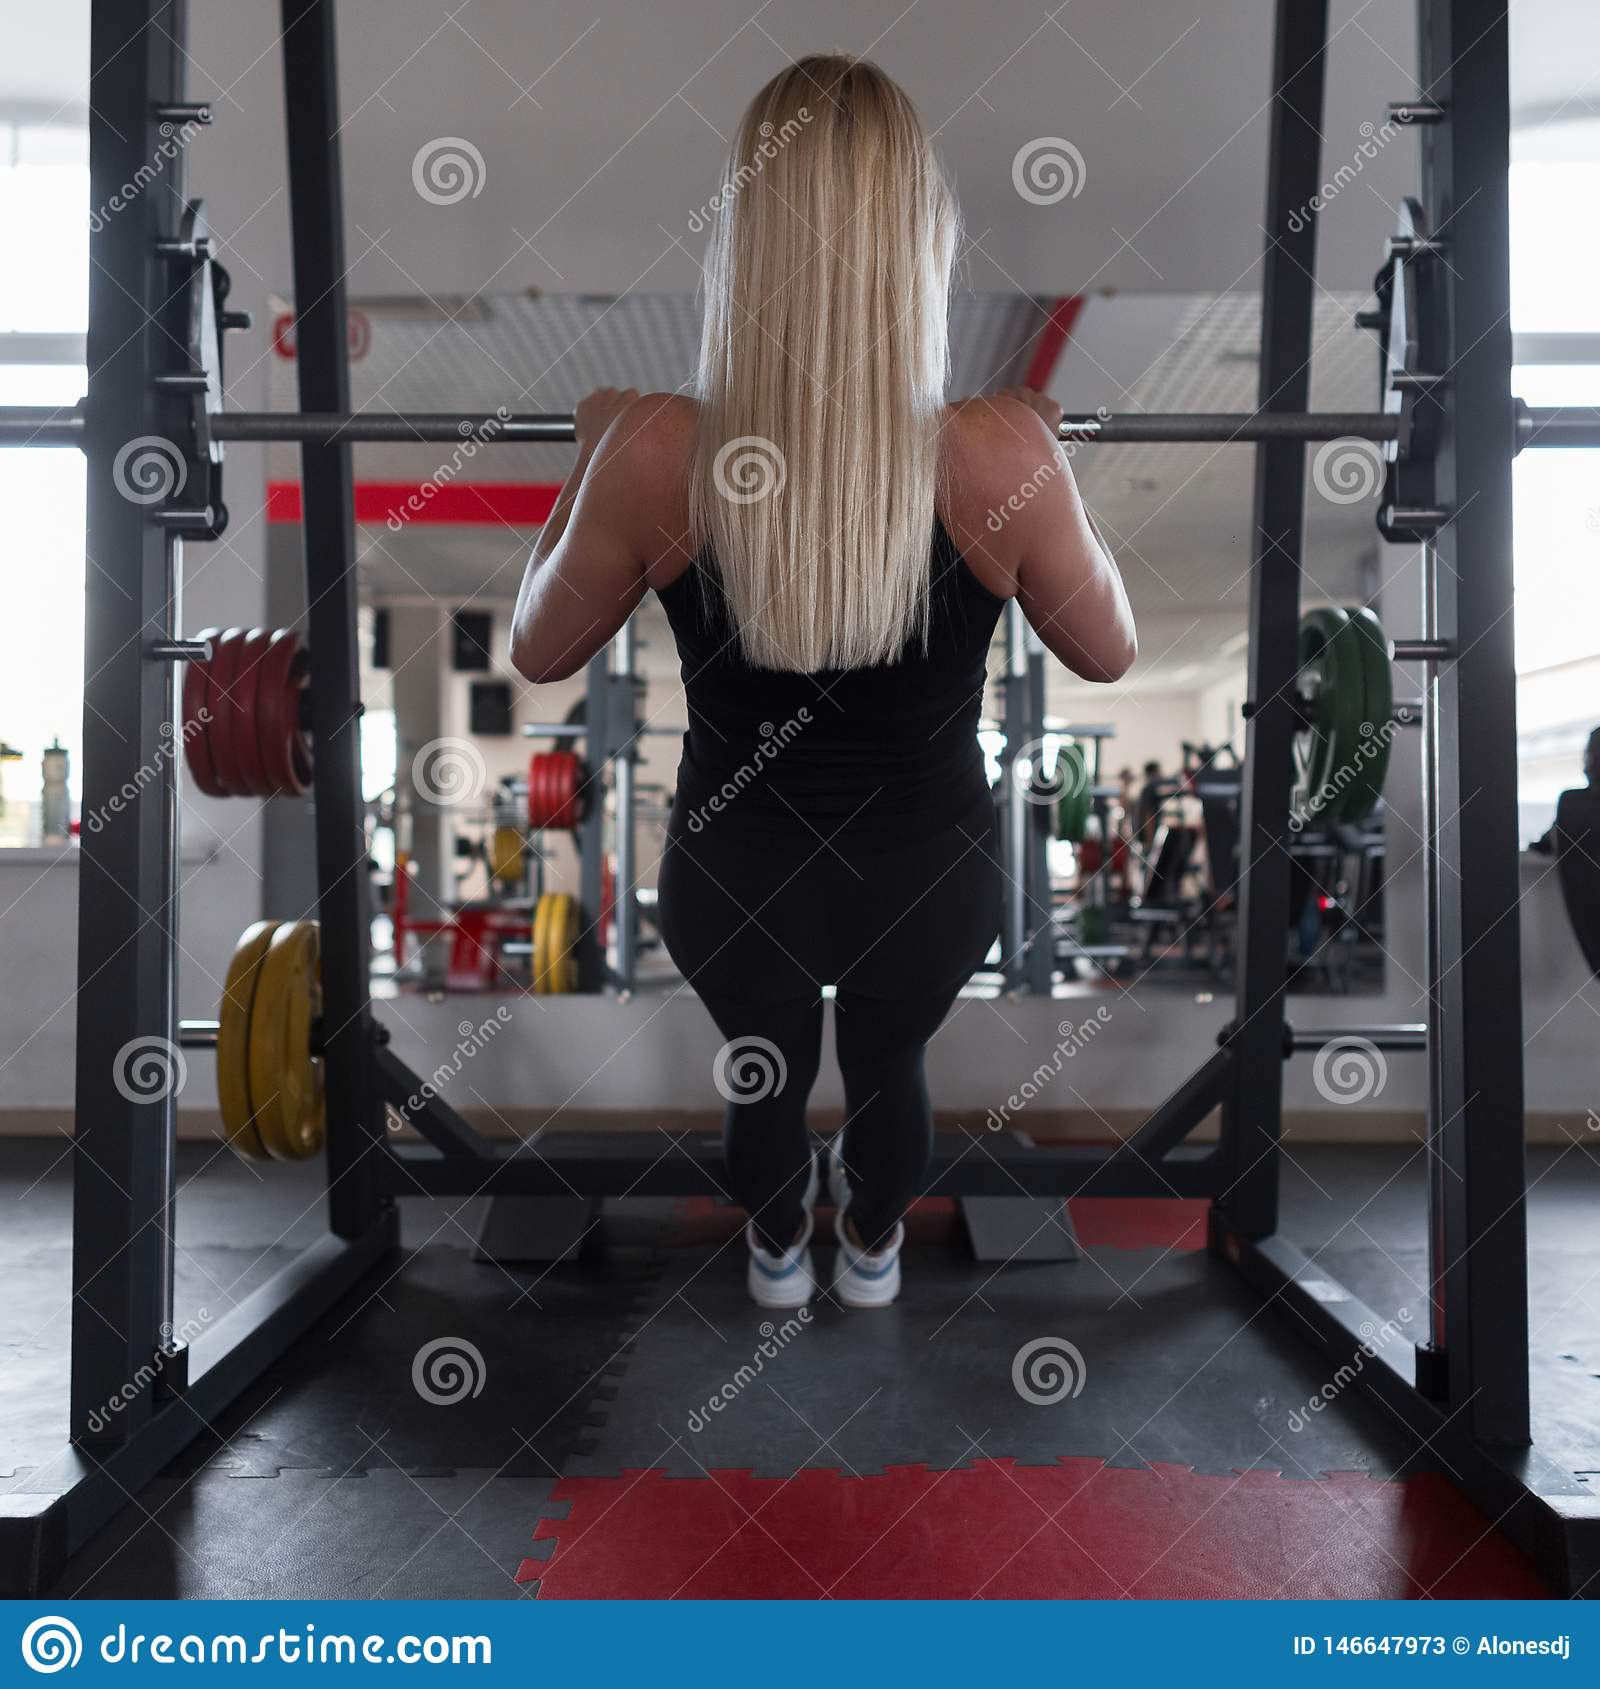 Athletic trainer of a young woman in black sportswear in gym sneakers. Girl doing exercises in a fitness studio. Back view.